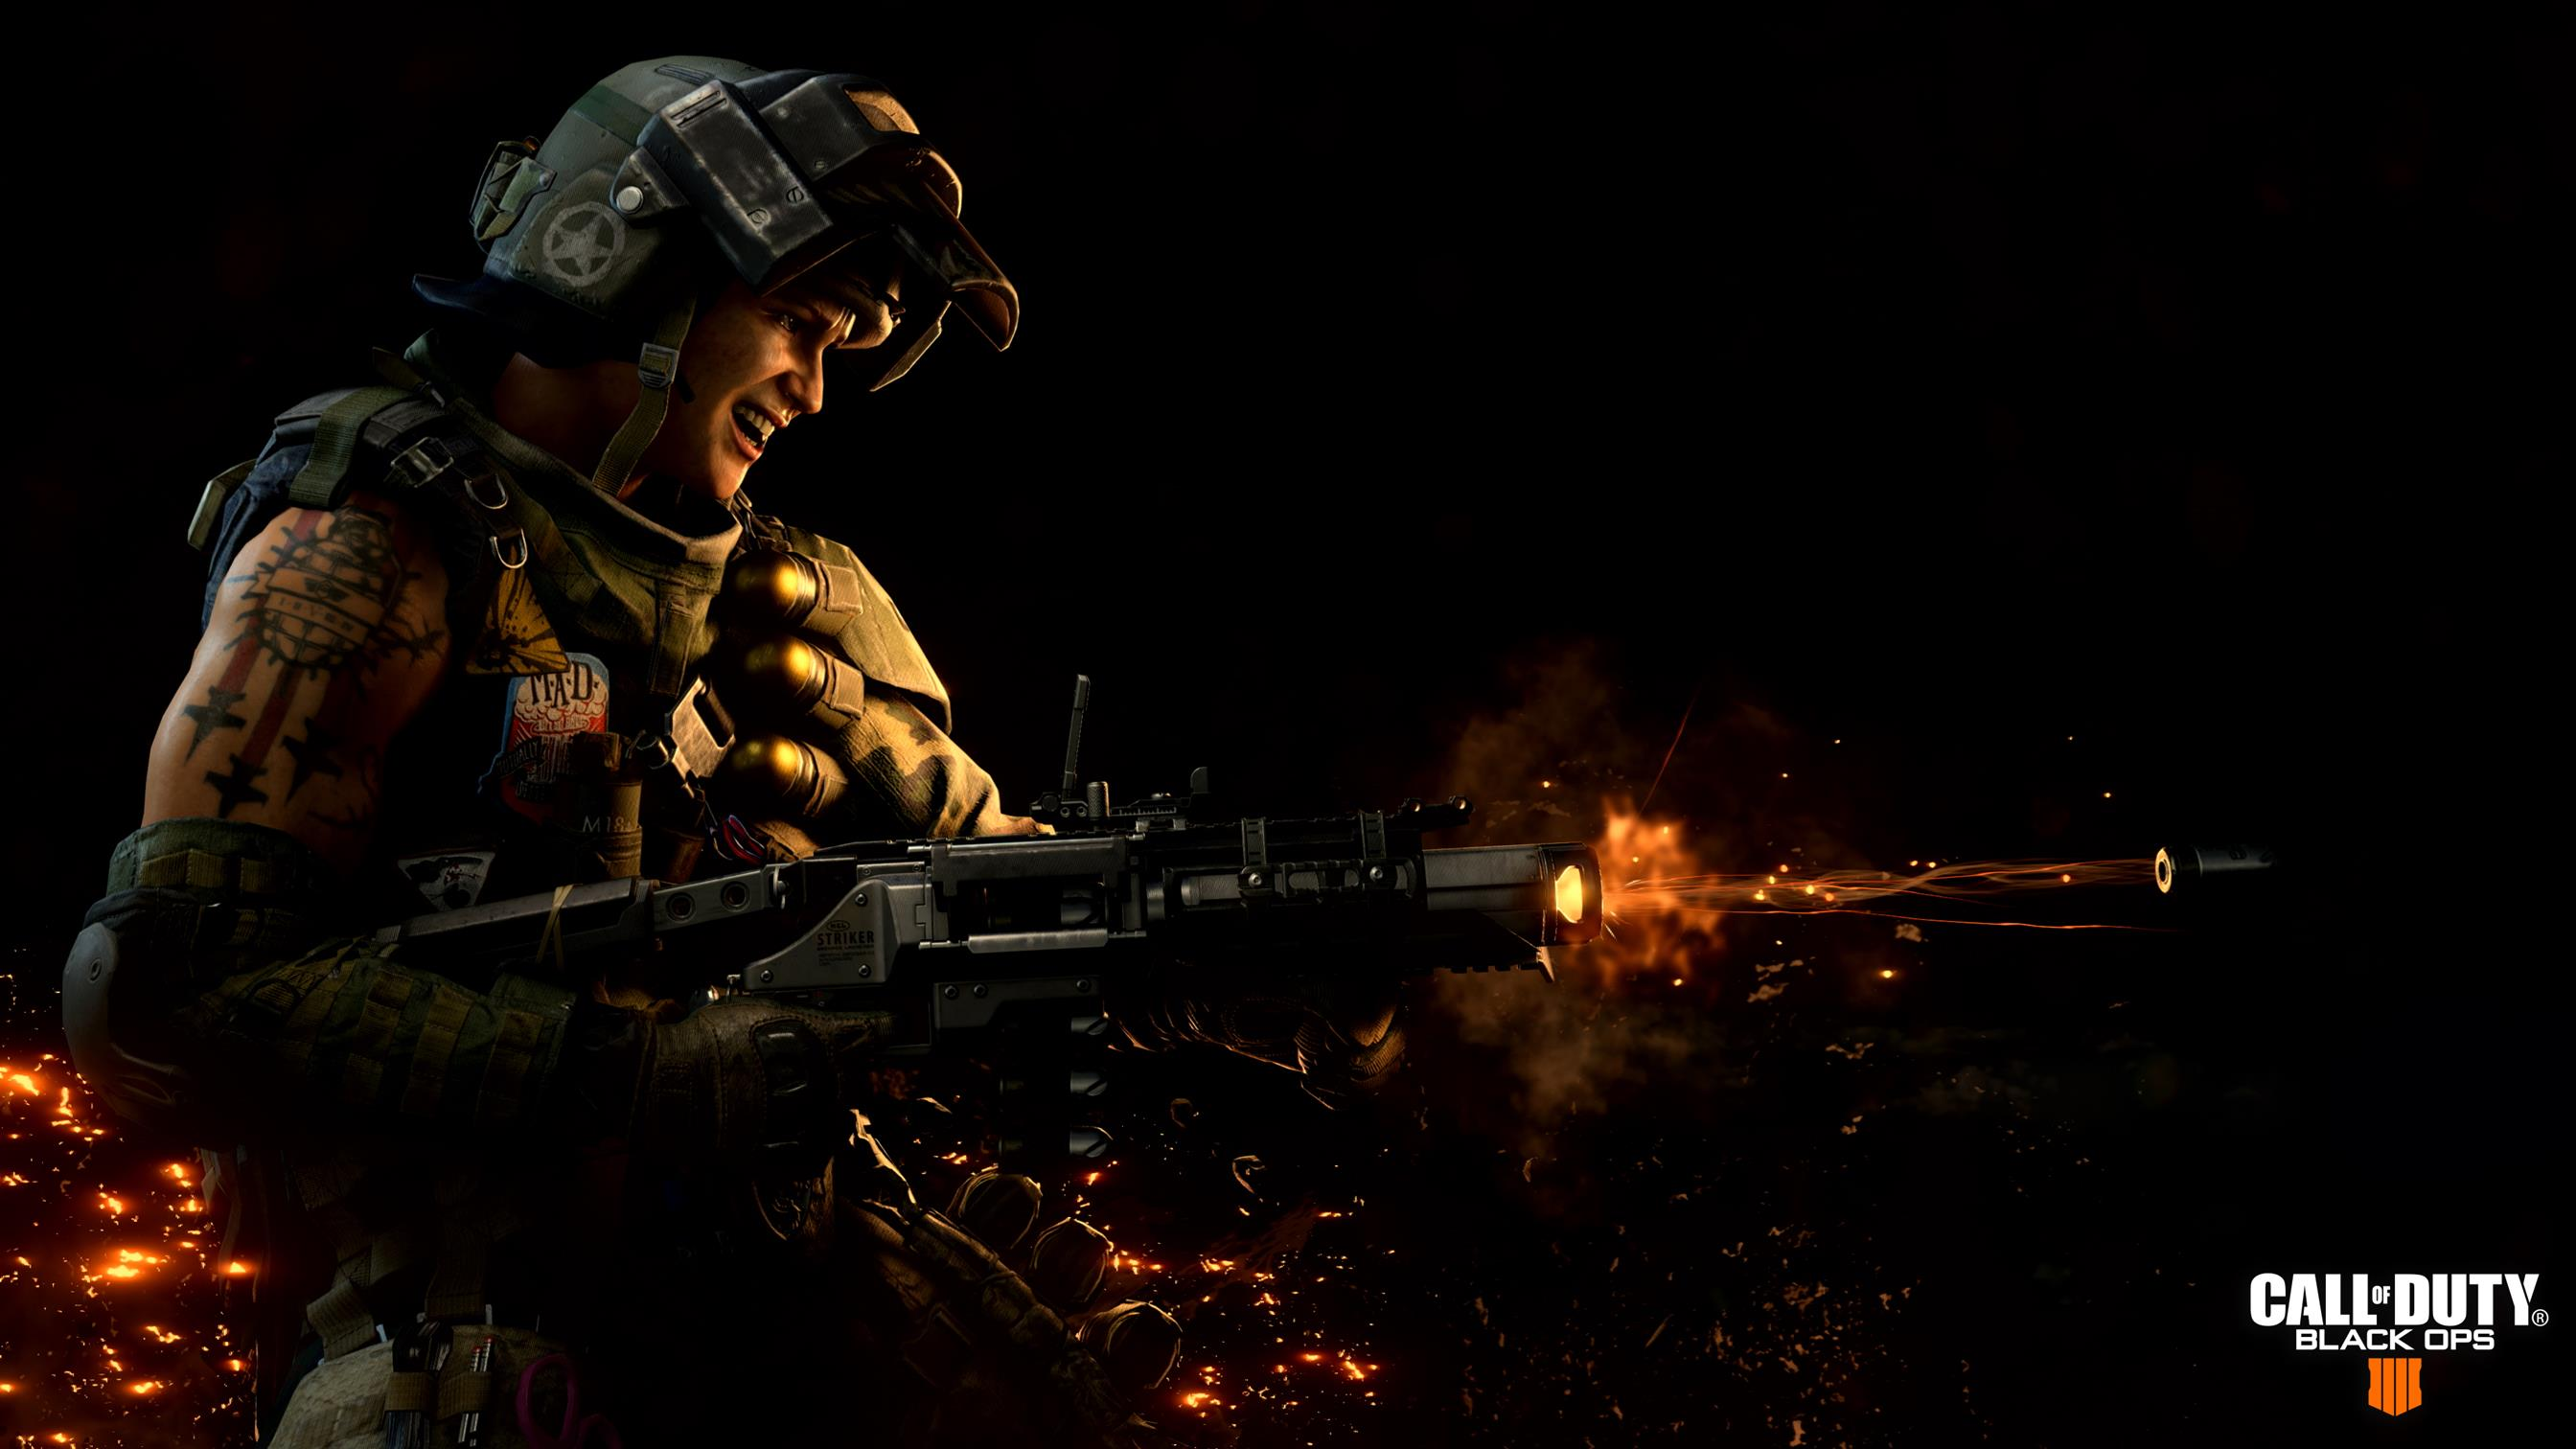 Call of Duty: Black Ops 4 Reveals Trailer for Blackout Mode